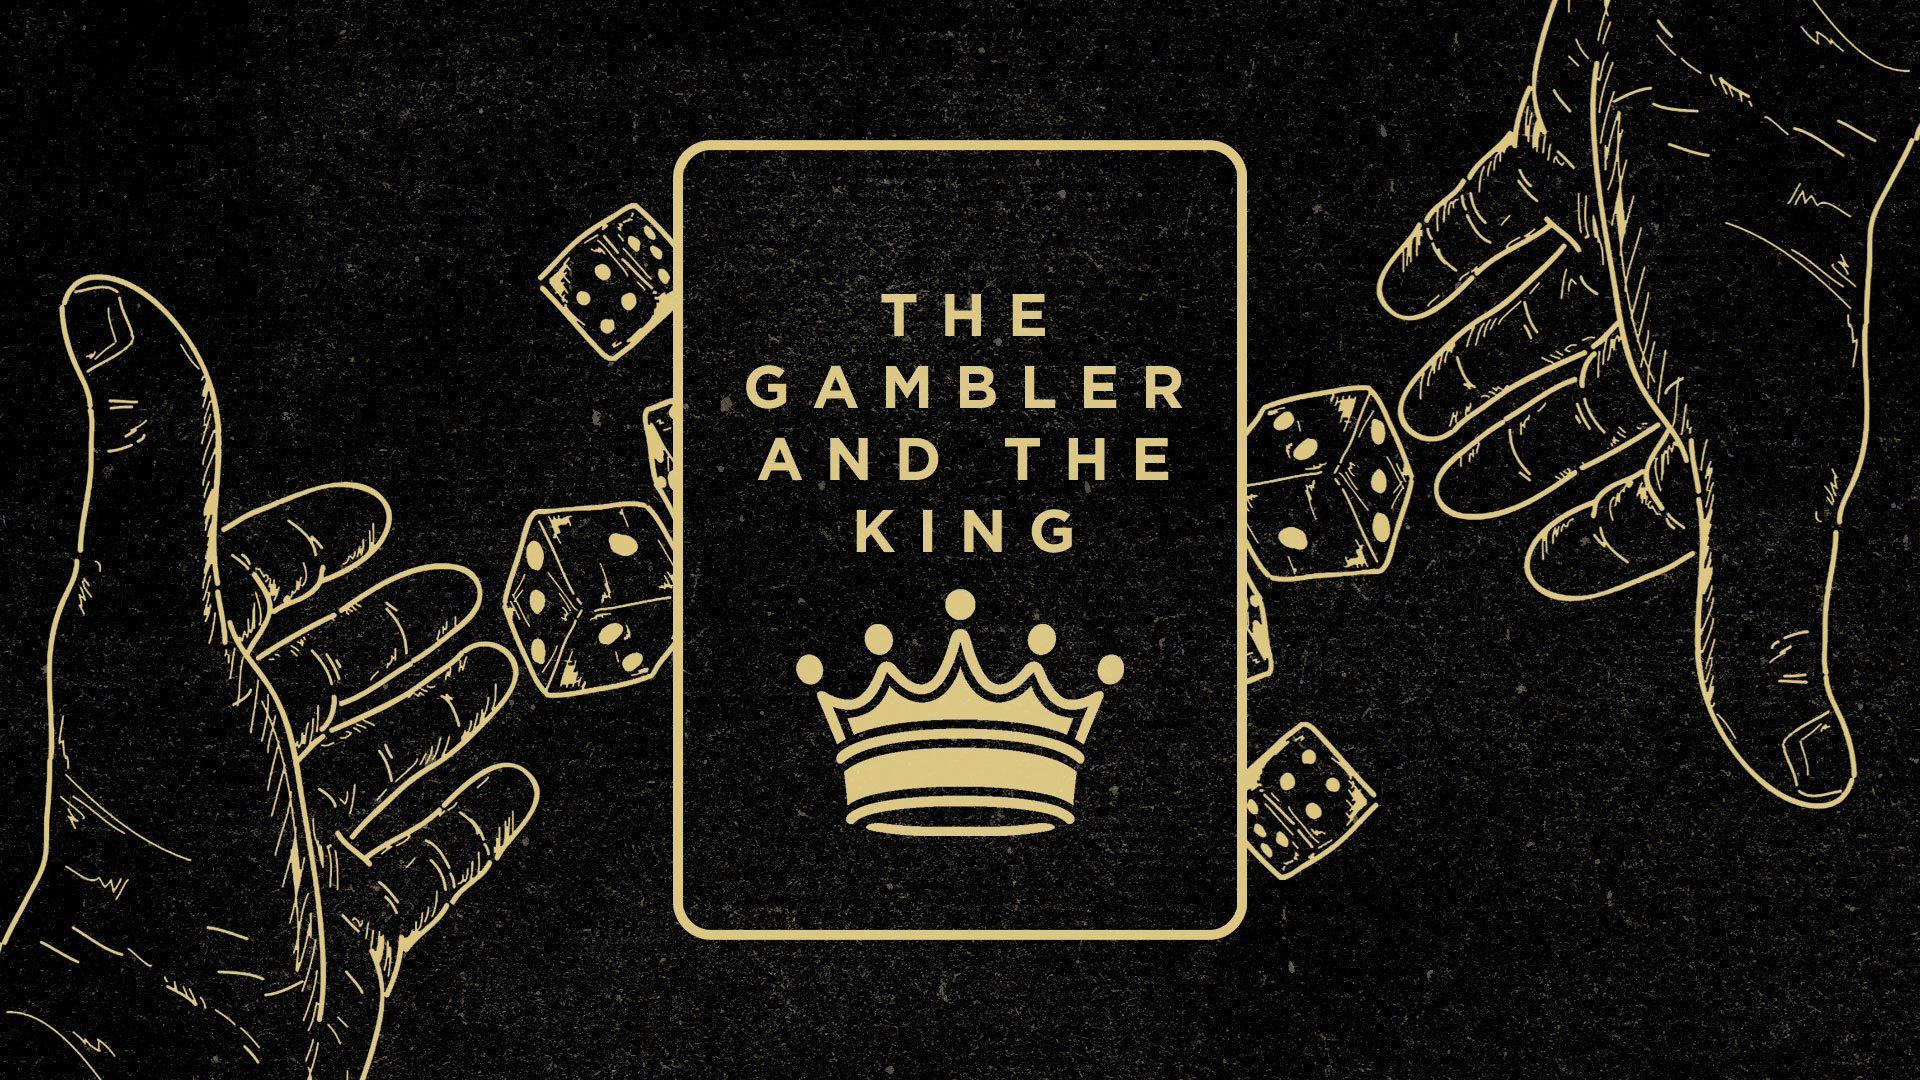 2019-05-09-The-Gambler-and-The-King-1920-1080.jpg